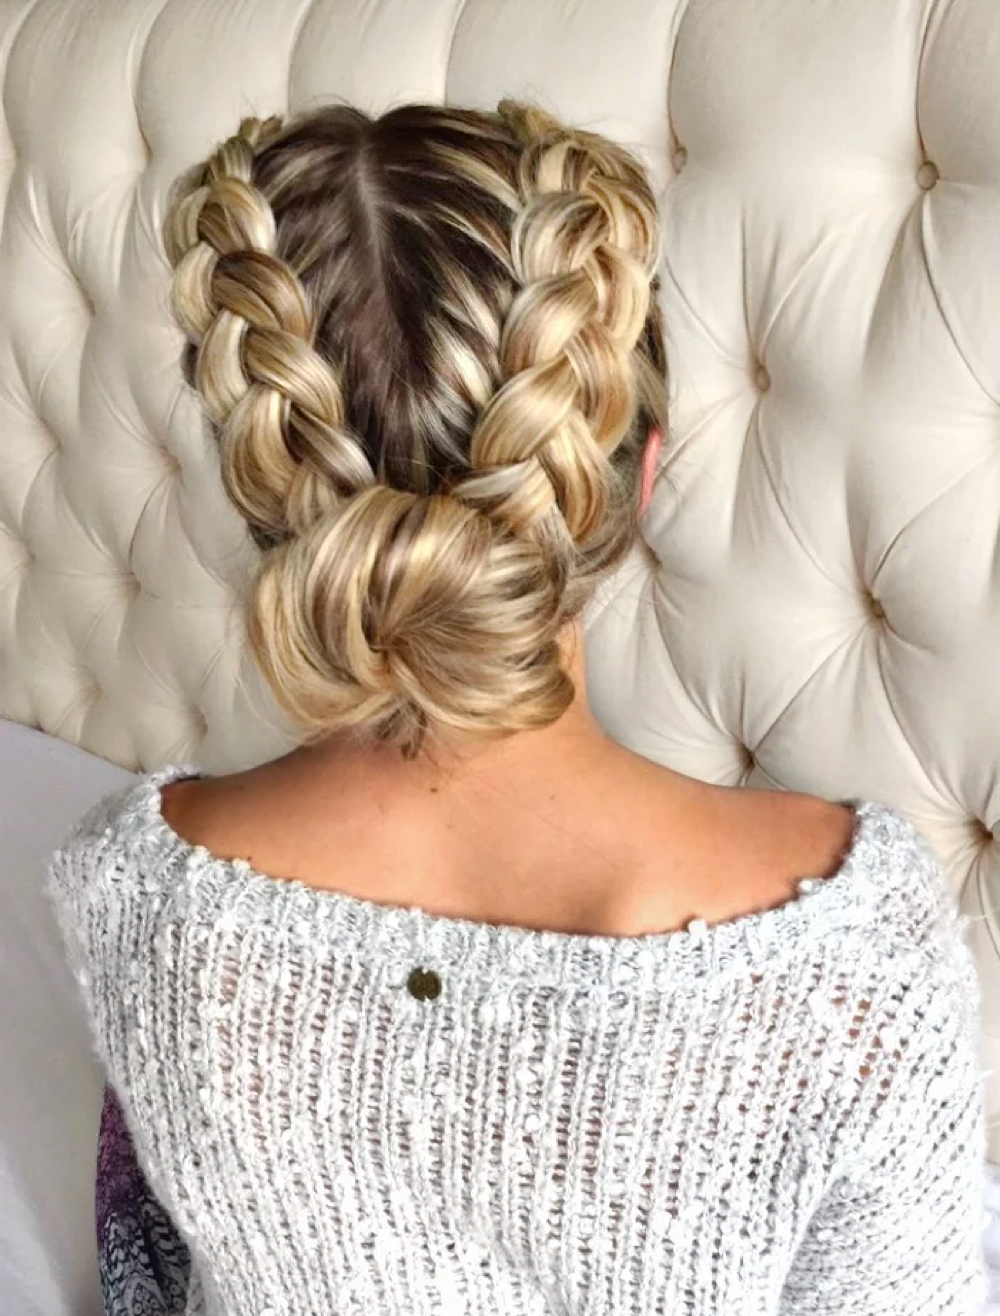 29 Gorgeous Braided Updo Ideas For 2019 Inside Most Up To Date Asymmetrical French Braided Hairstyles (View 1 of 20)